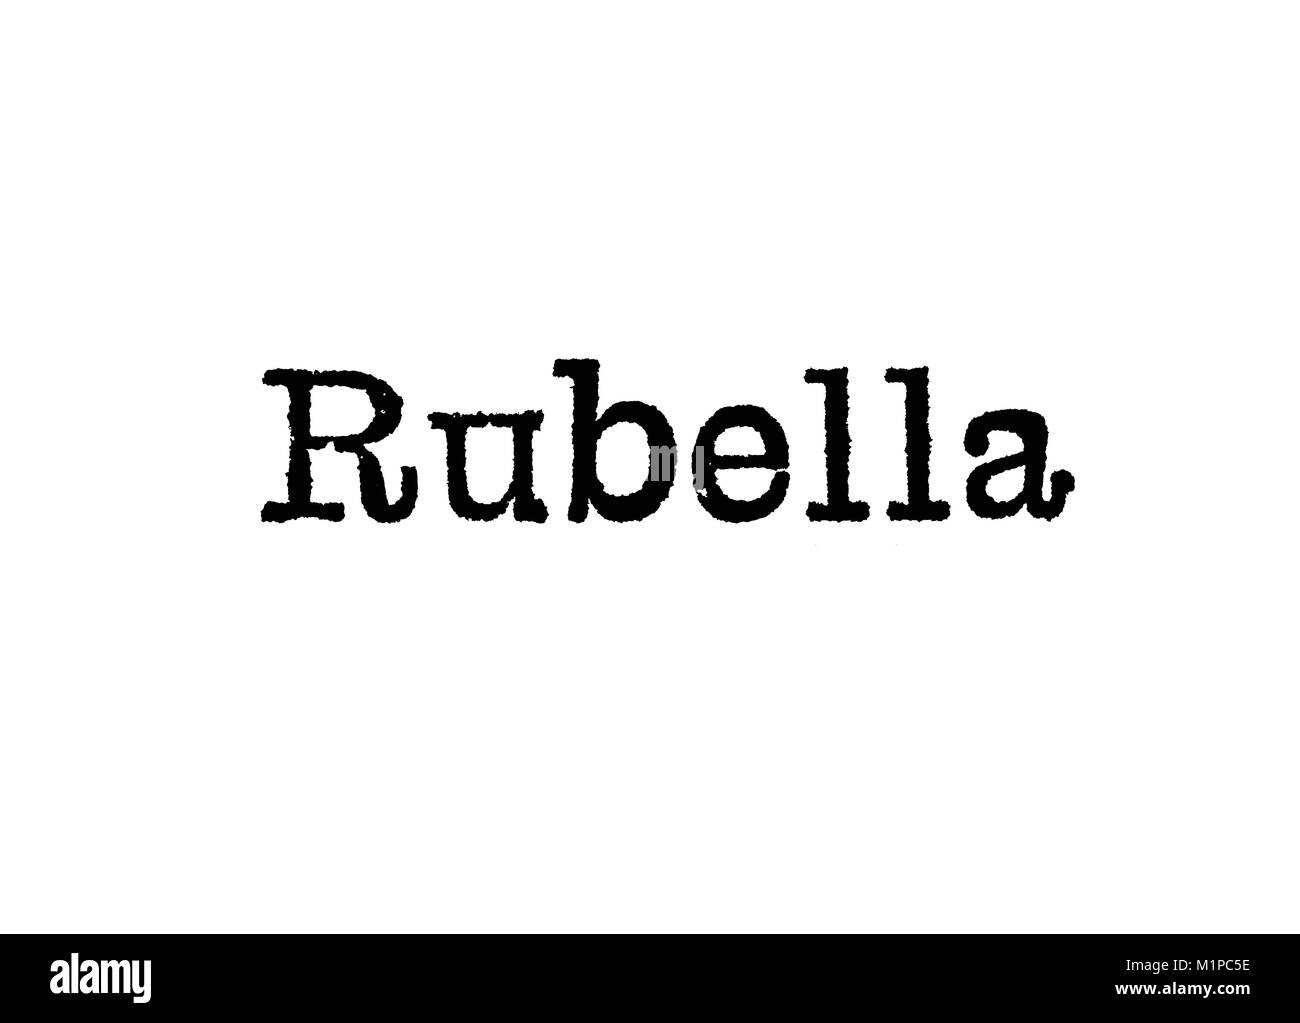 The word Rubella from a typewriter on a white background - Stock Image